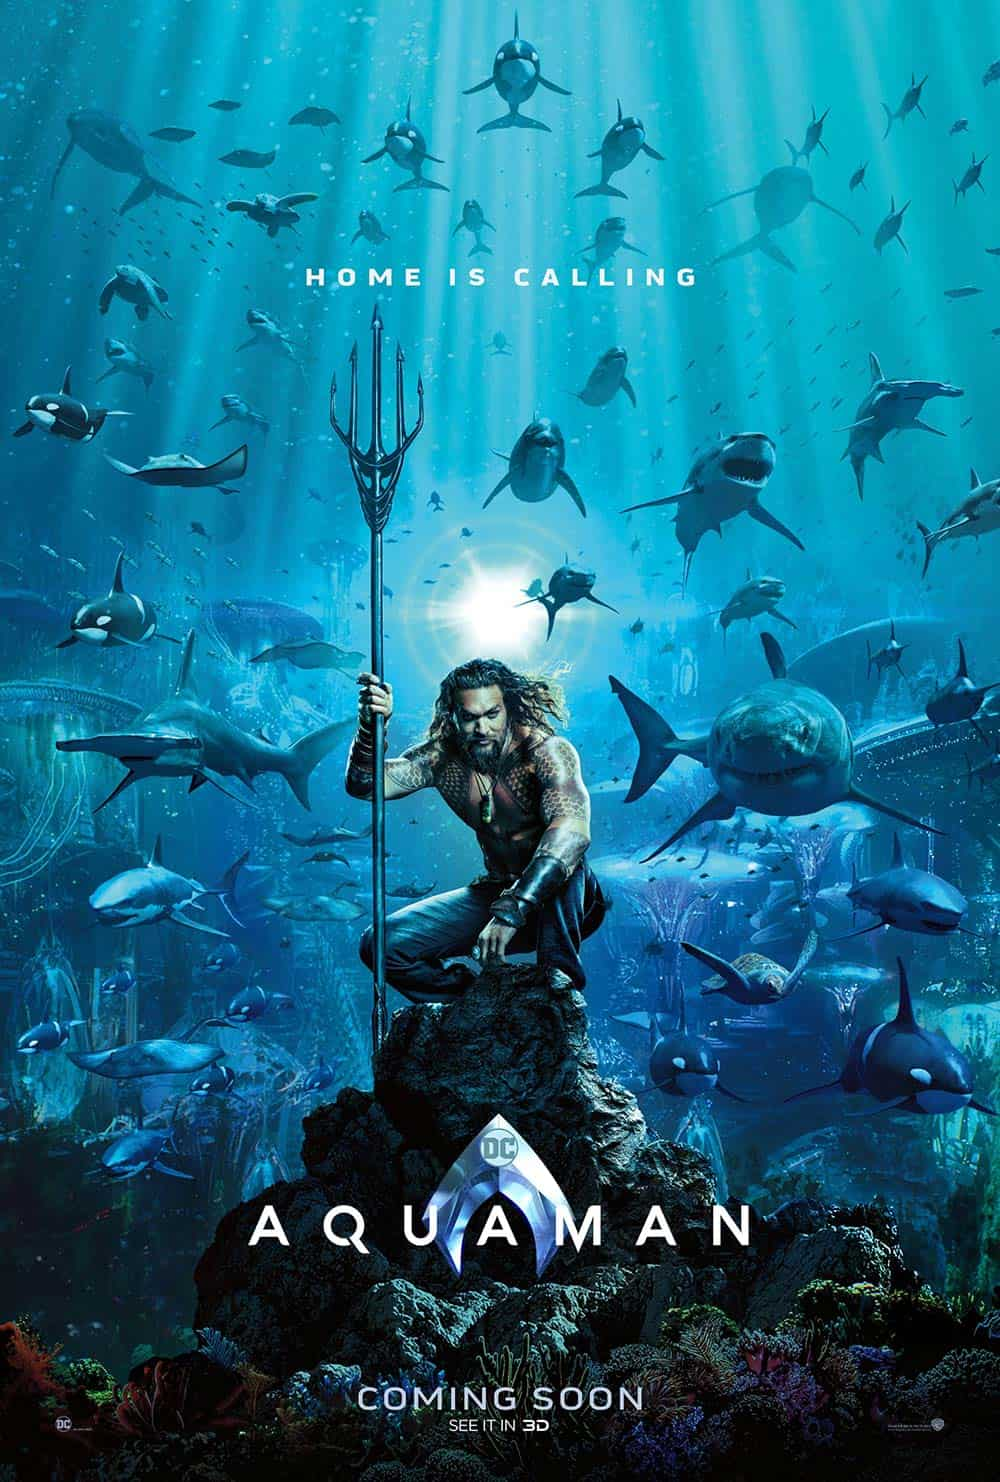 Aquaman Poster - OC Movie Reviews - Movie Reviews, Movie News, Documentary Reviews, Short Films, Short Film Reviews, Trailers, Movie Trailers, Interviews, film reviews, film news, hollywood, indie films, documentaries